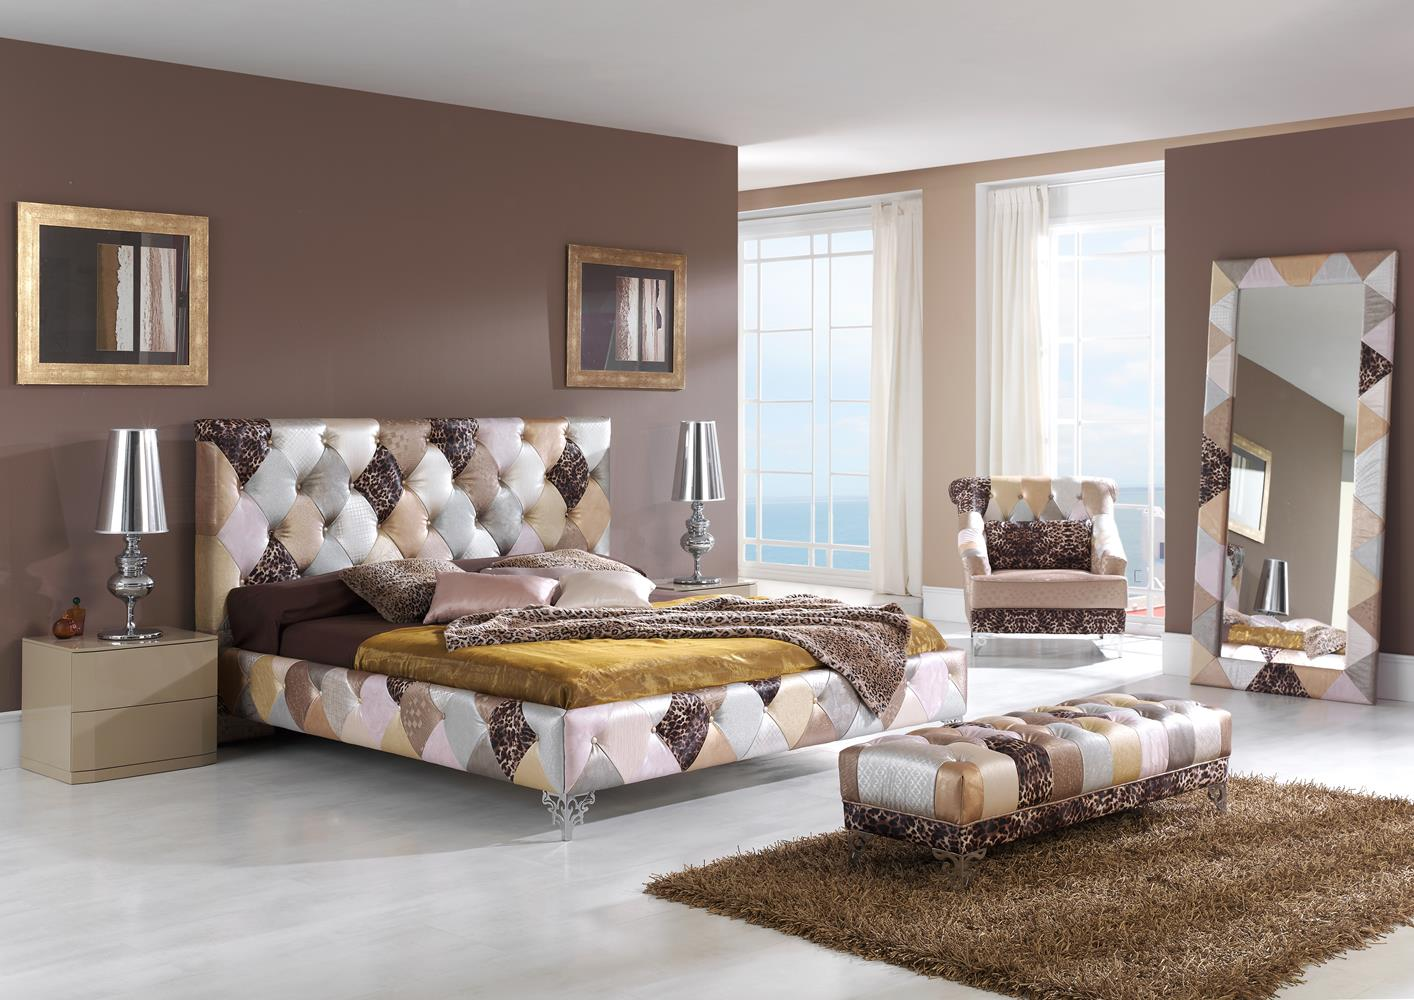 acheter votre lit contemporain patchwork chez simeuble. Black Bedroom Furniture Sets. Home Design Ideas